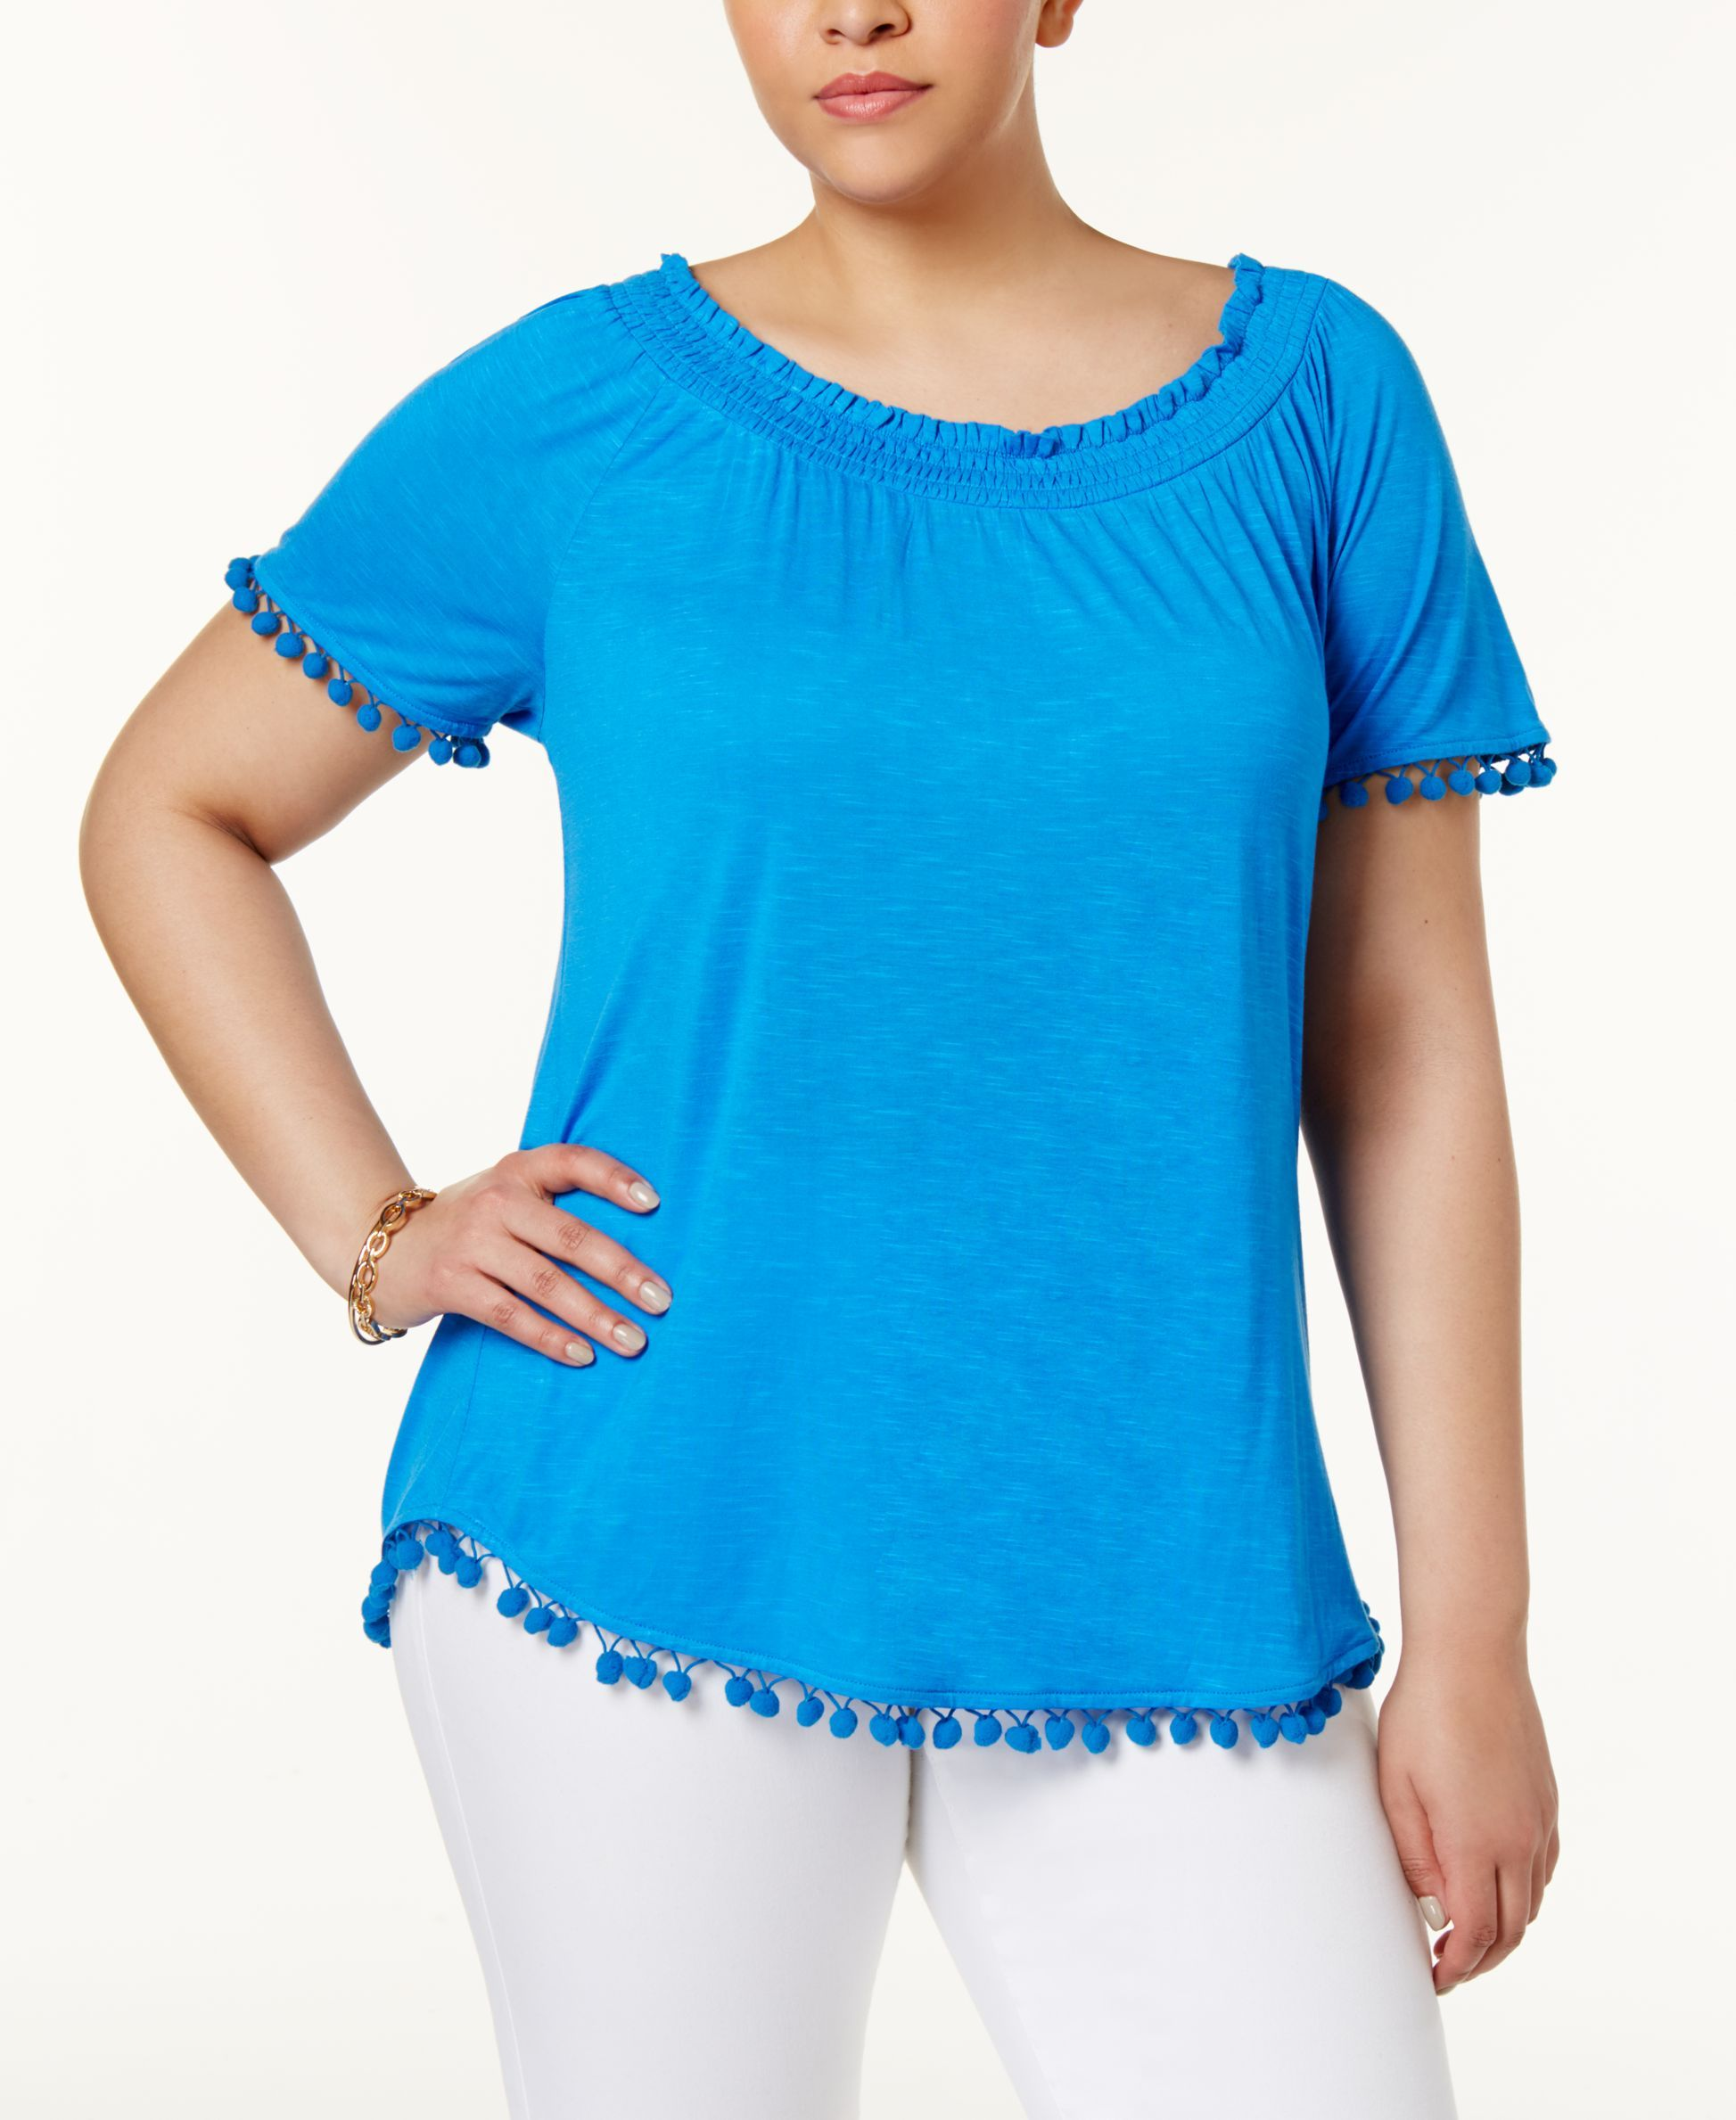 e527569a2d760 Inc International Concepts Plus Size Popsicle Pom-Pom Top